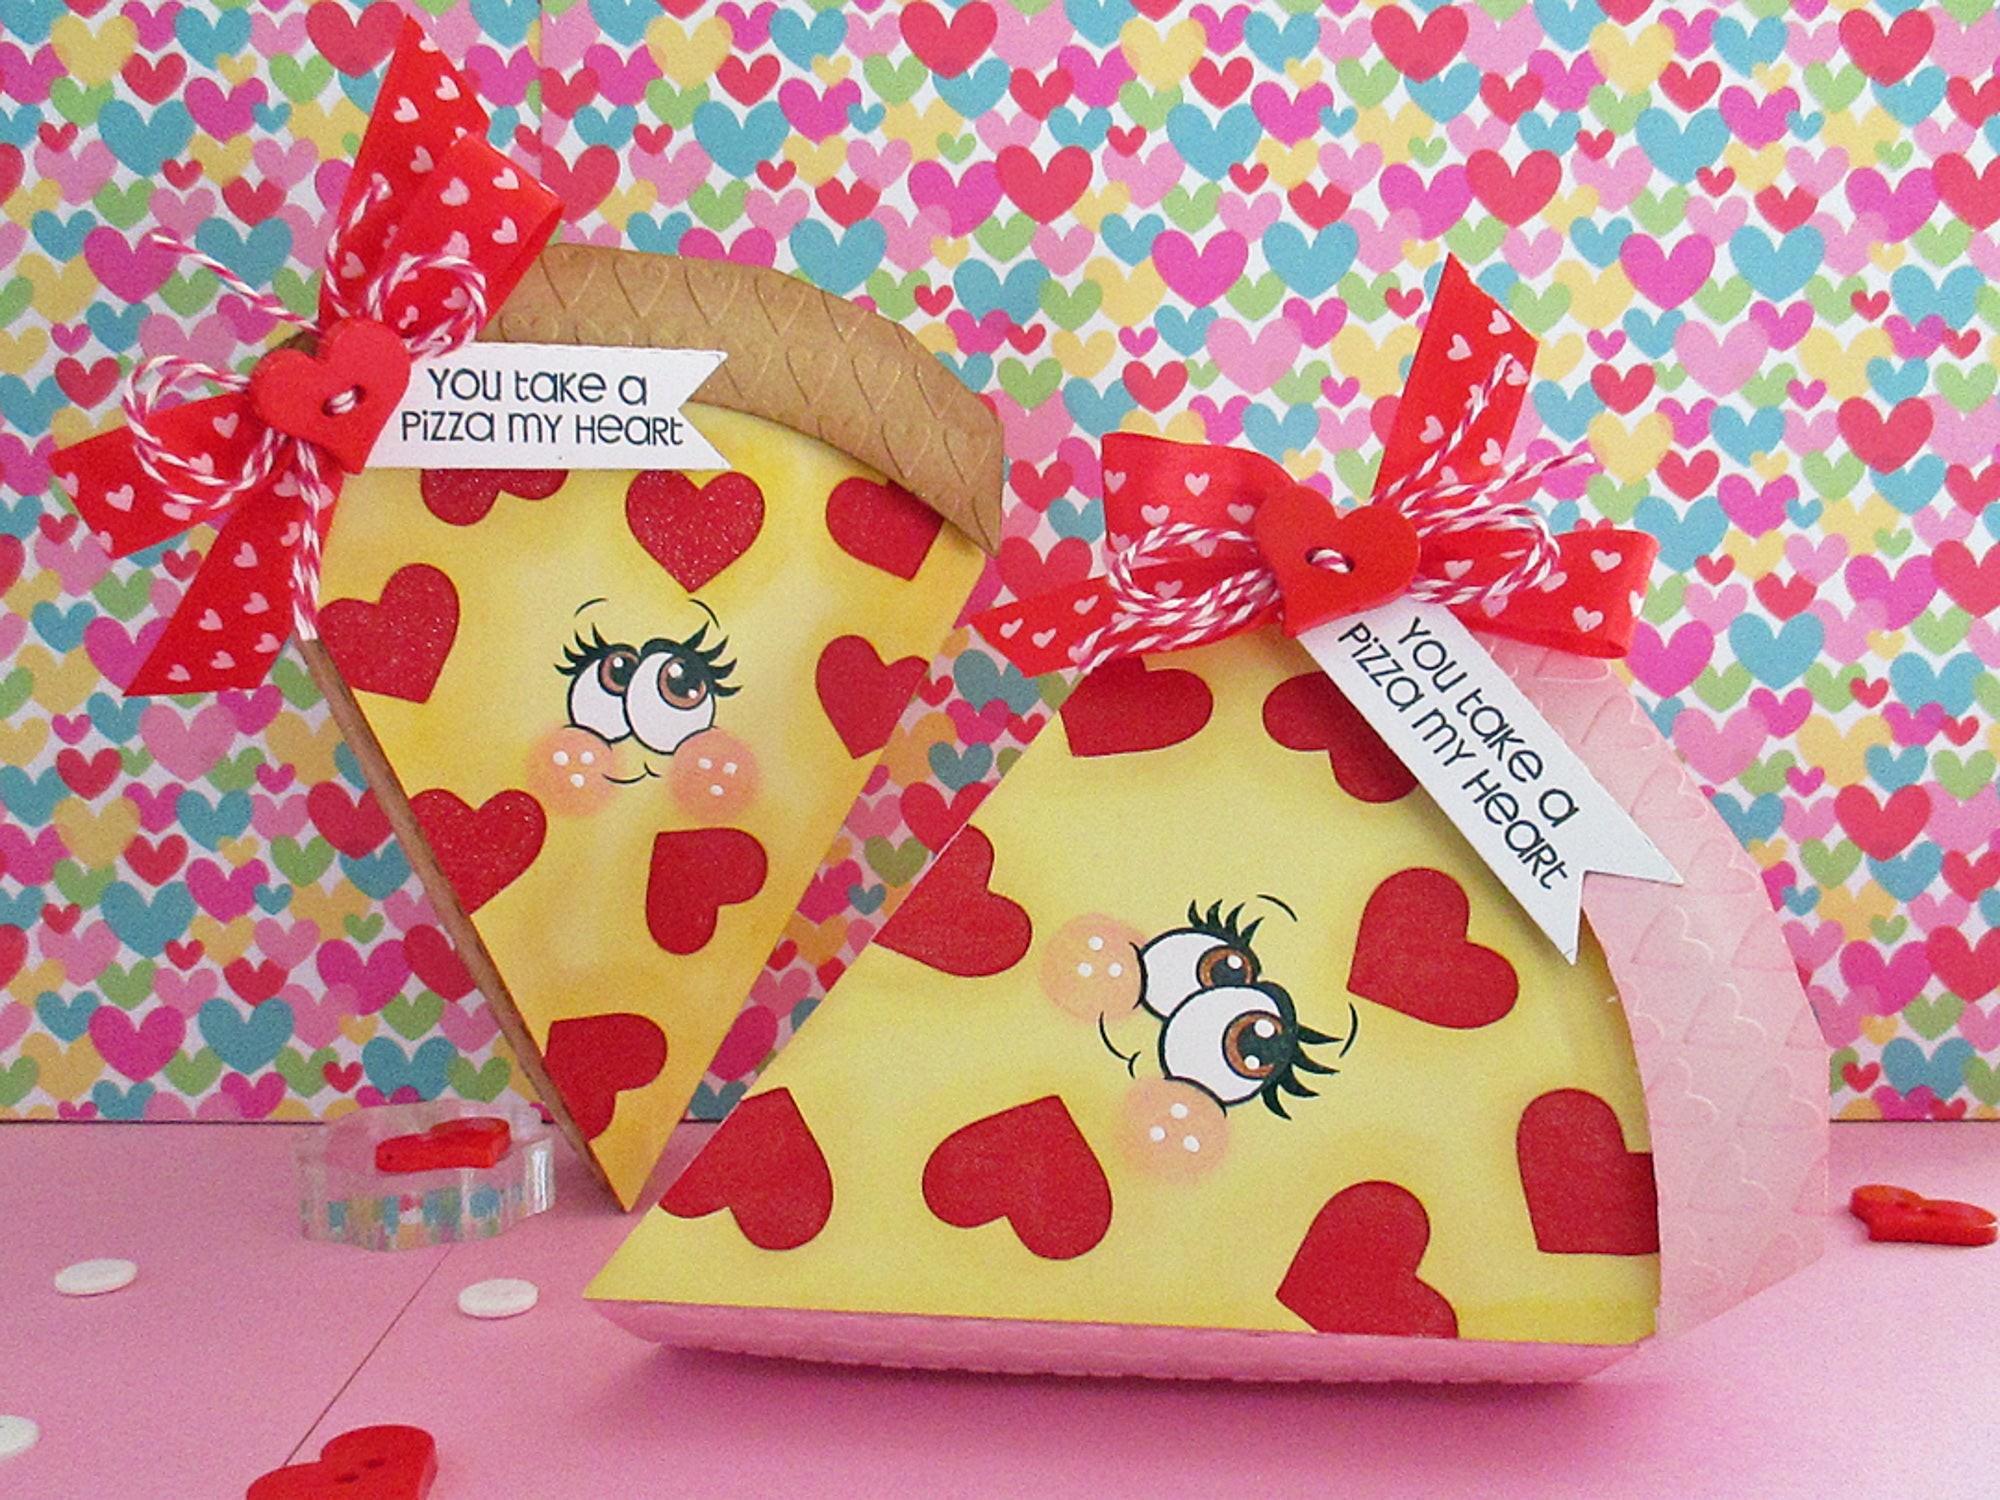 Take A Pizza My Heart Valentine Gift Box